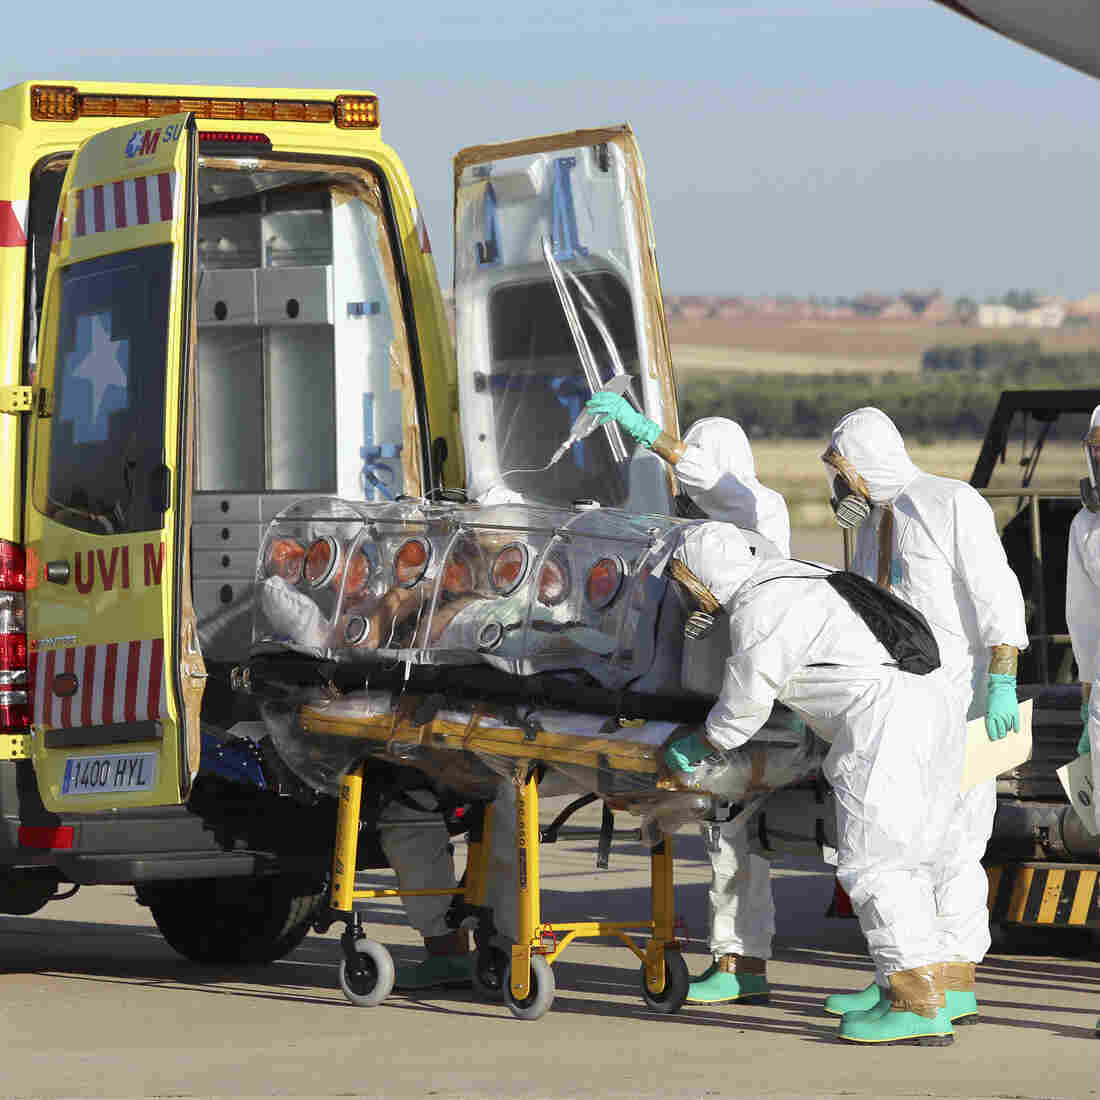 Miguel Pajares, a Spanish priest who was infected with the Ebola virus while working in Liberia, is transferred from a plane to an ambulance after arriving in Spain. He was treated with an experimental drug but died on the disease.